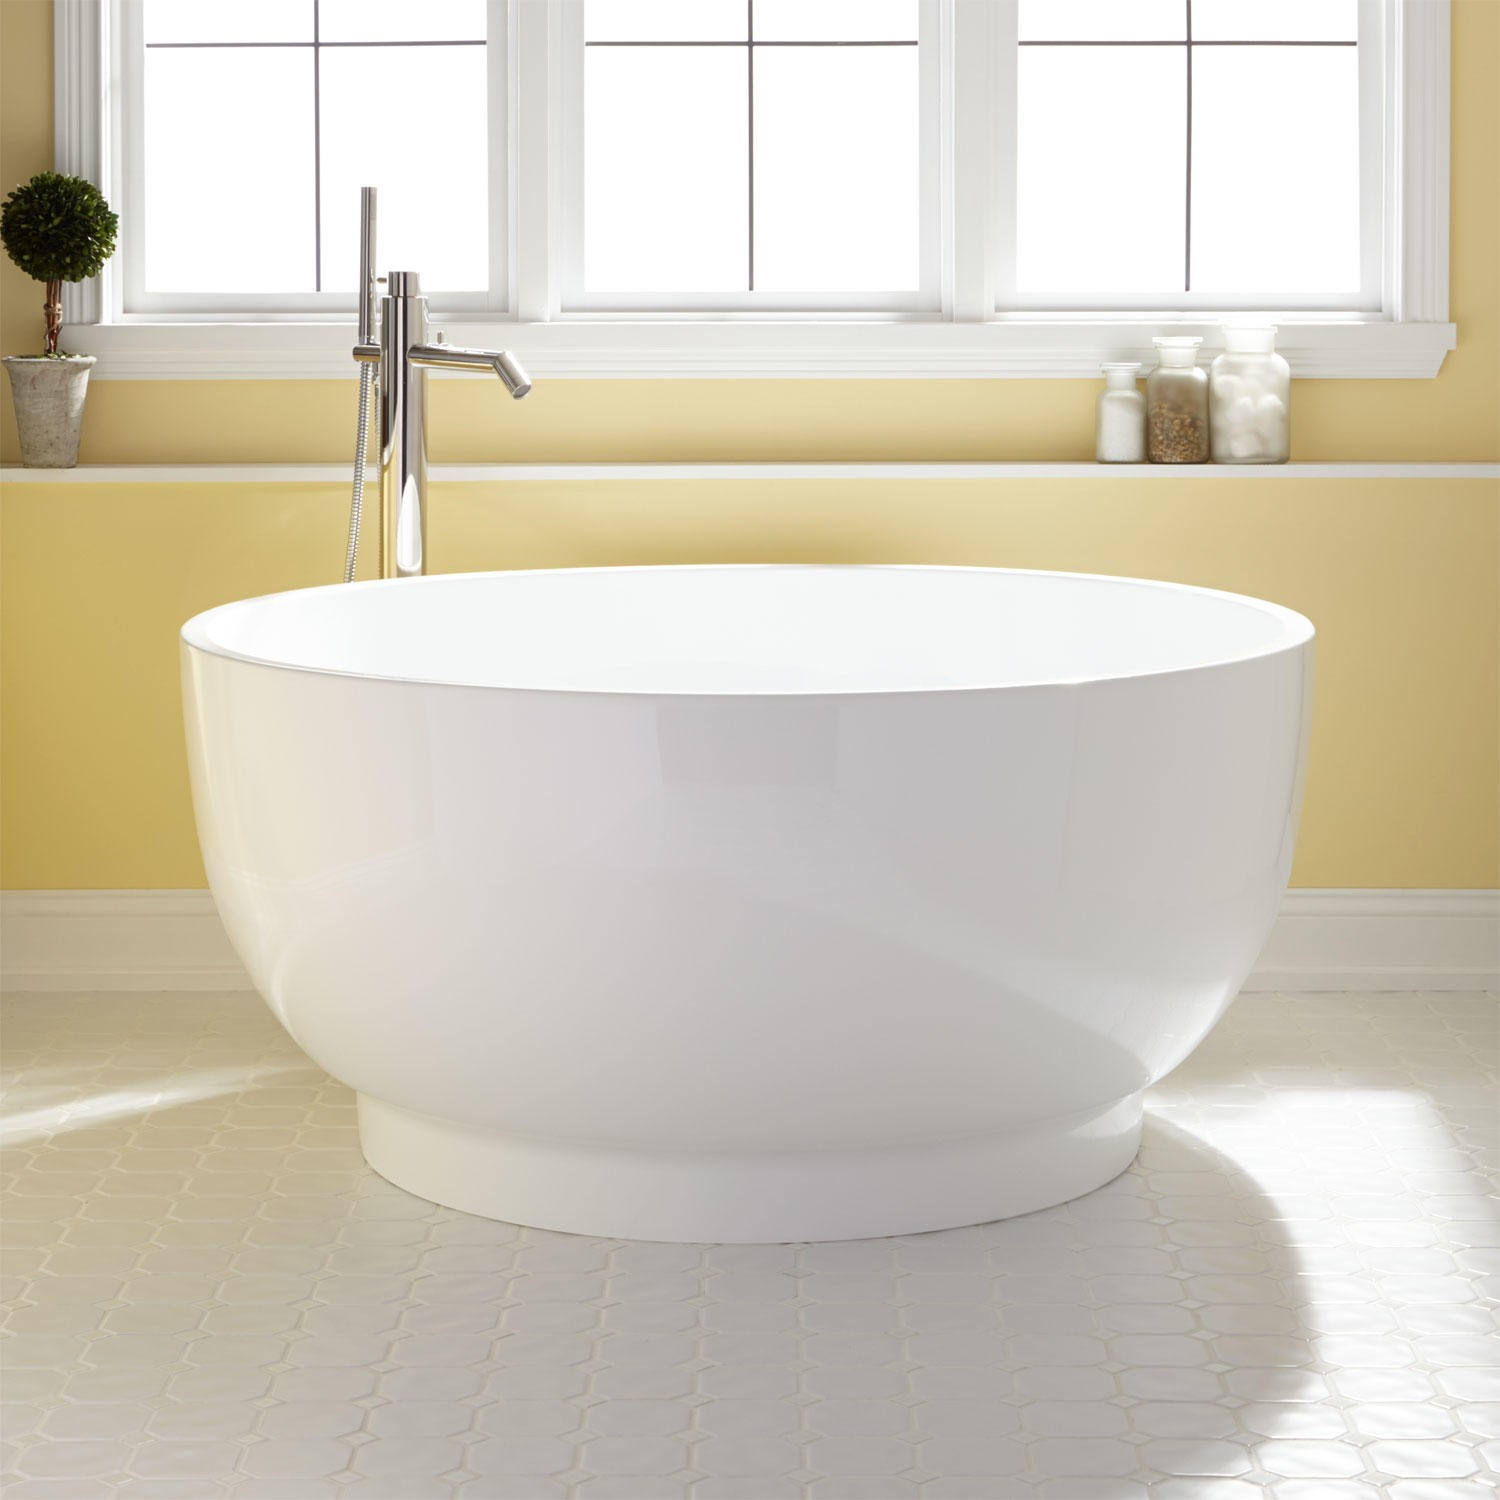 Traditional Round Soaking Tub.